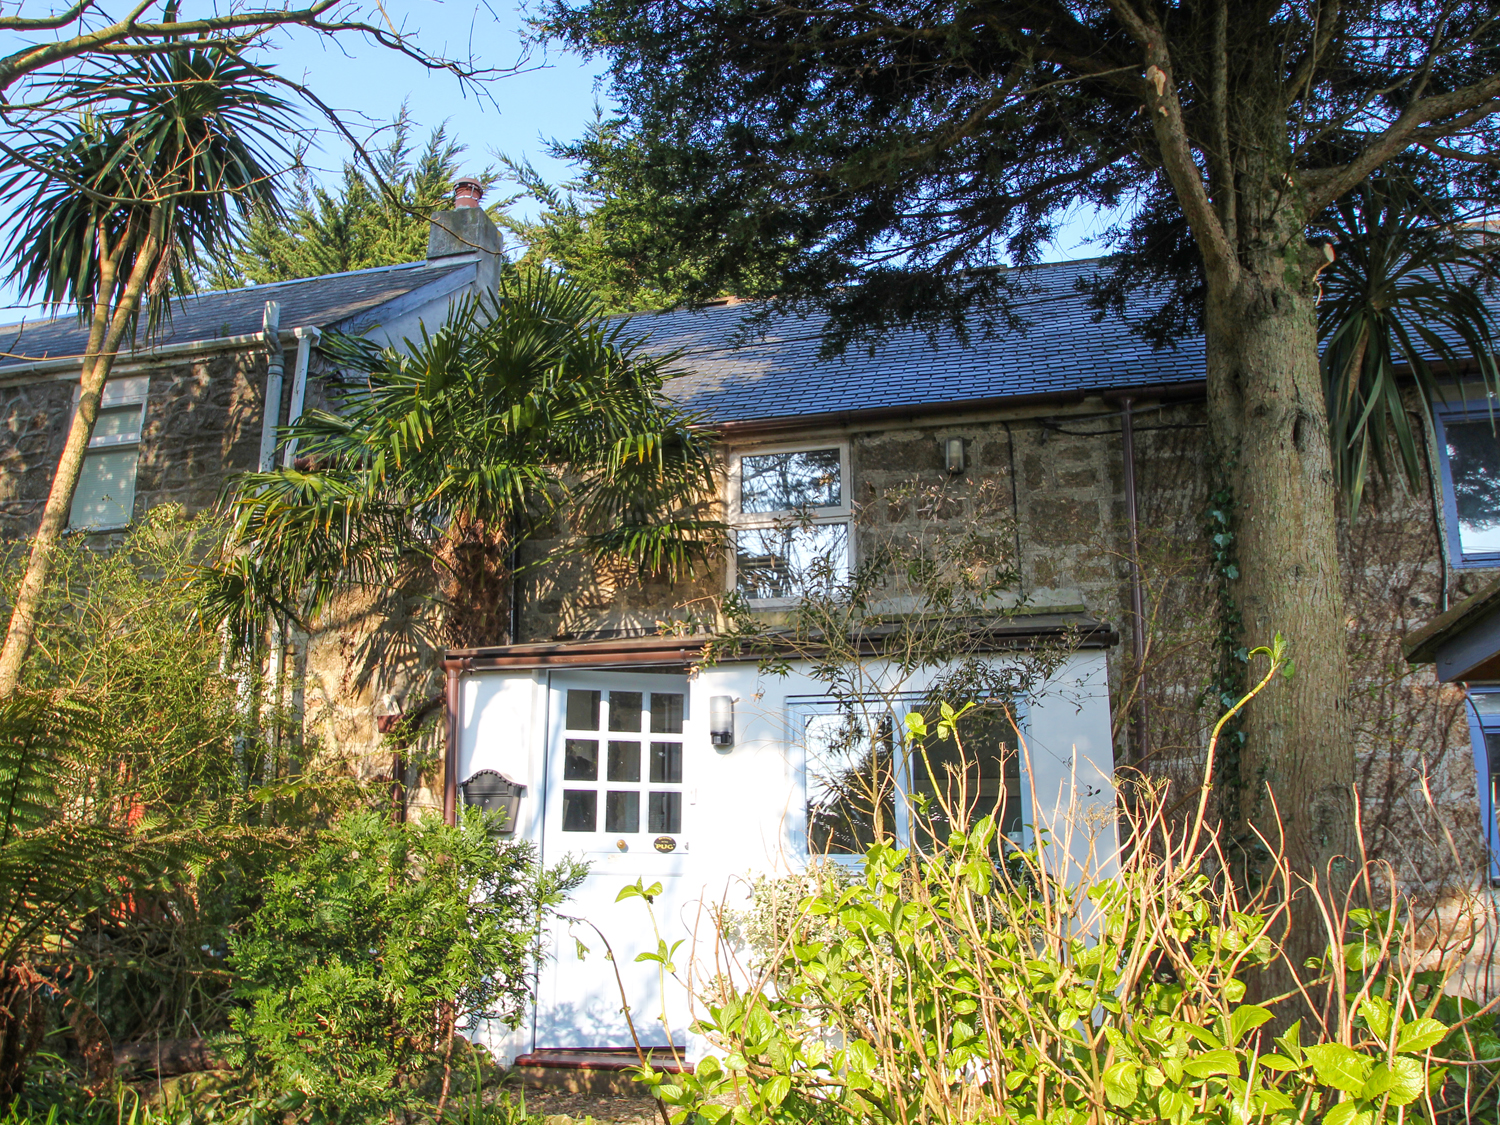 cottages tiptoe cornwall self country cottage catering couples in for